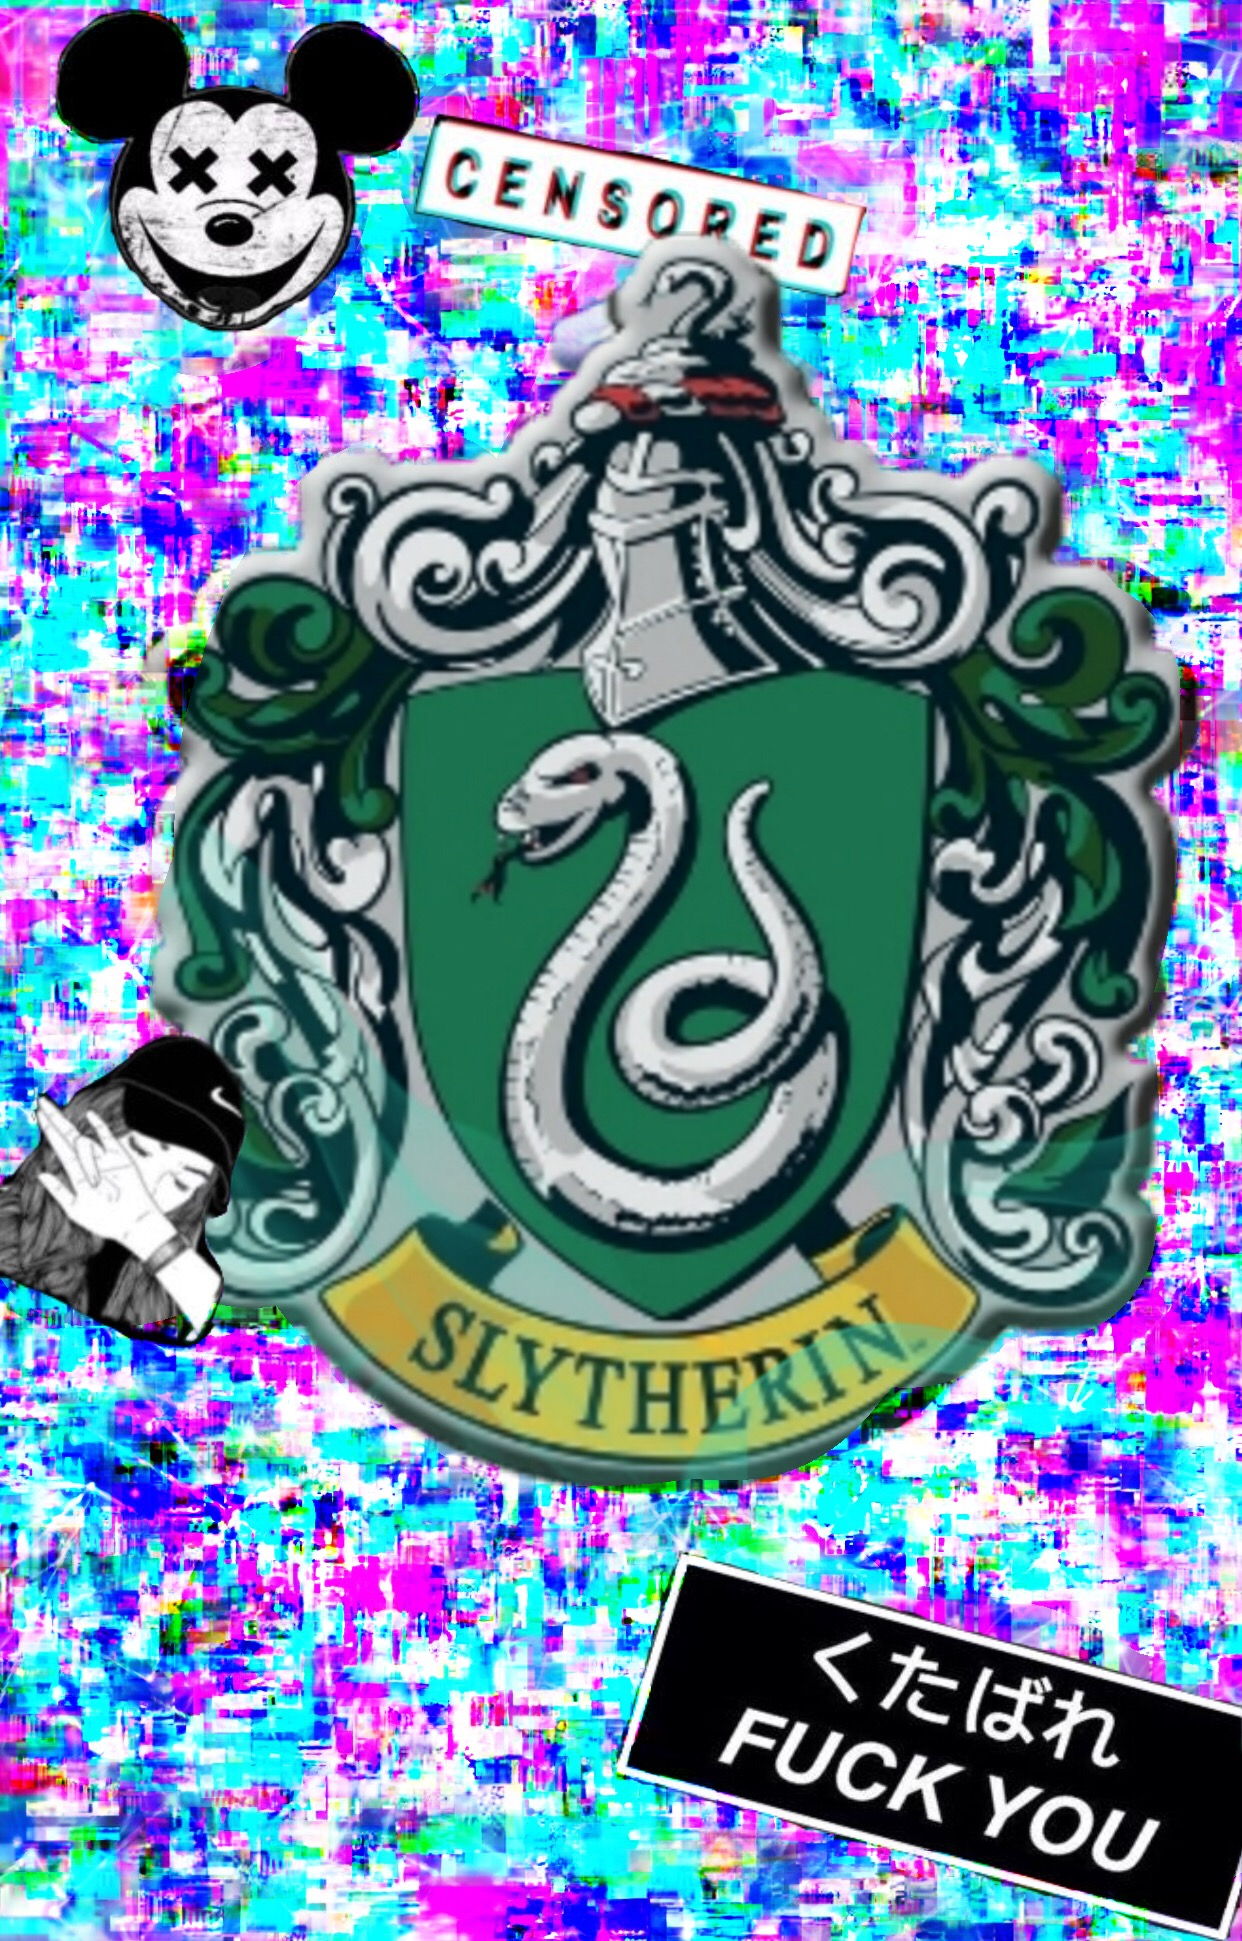 Slytherin Wallpaper, Feel Free To Save For Your Syltherin - Banner Slytherin - HD Wallpaper